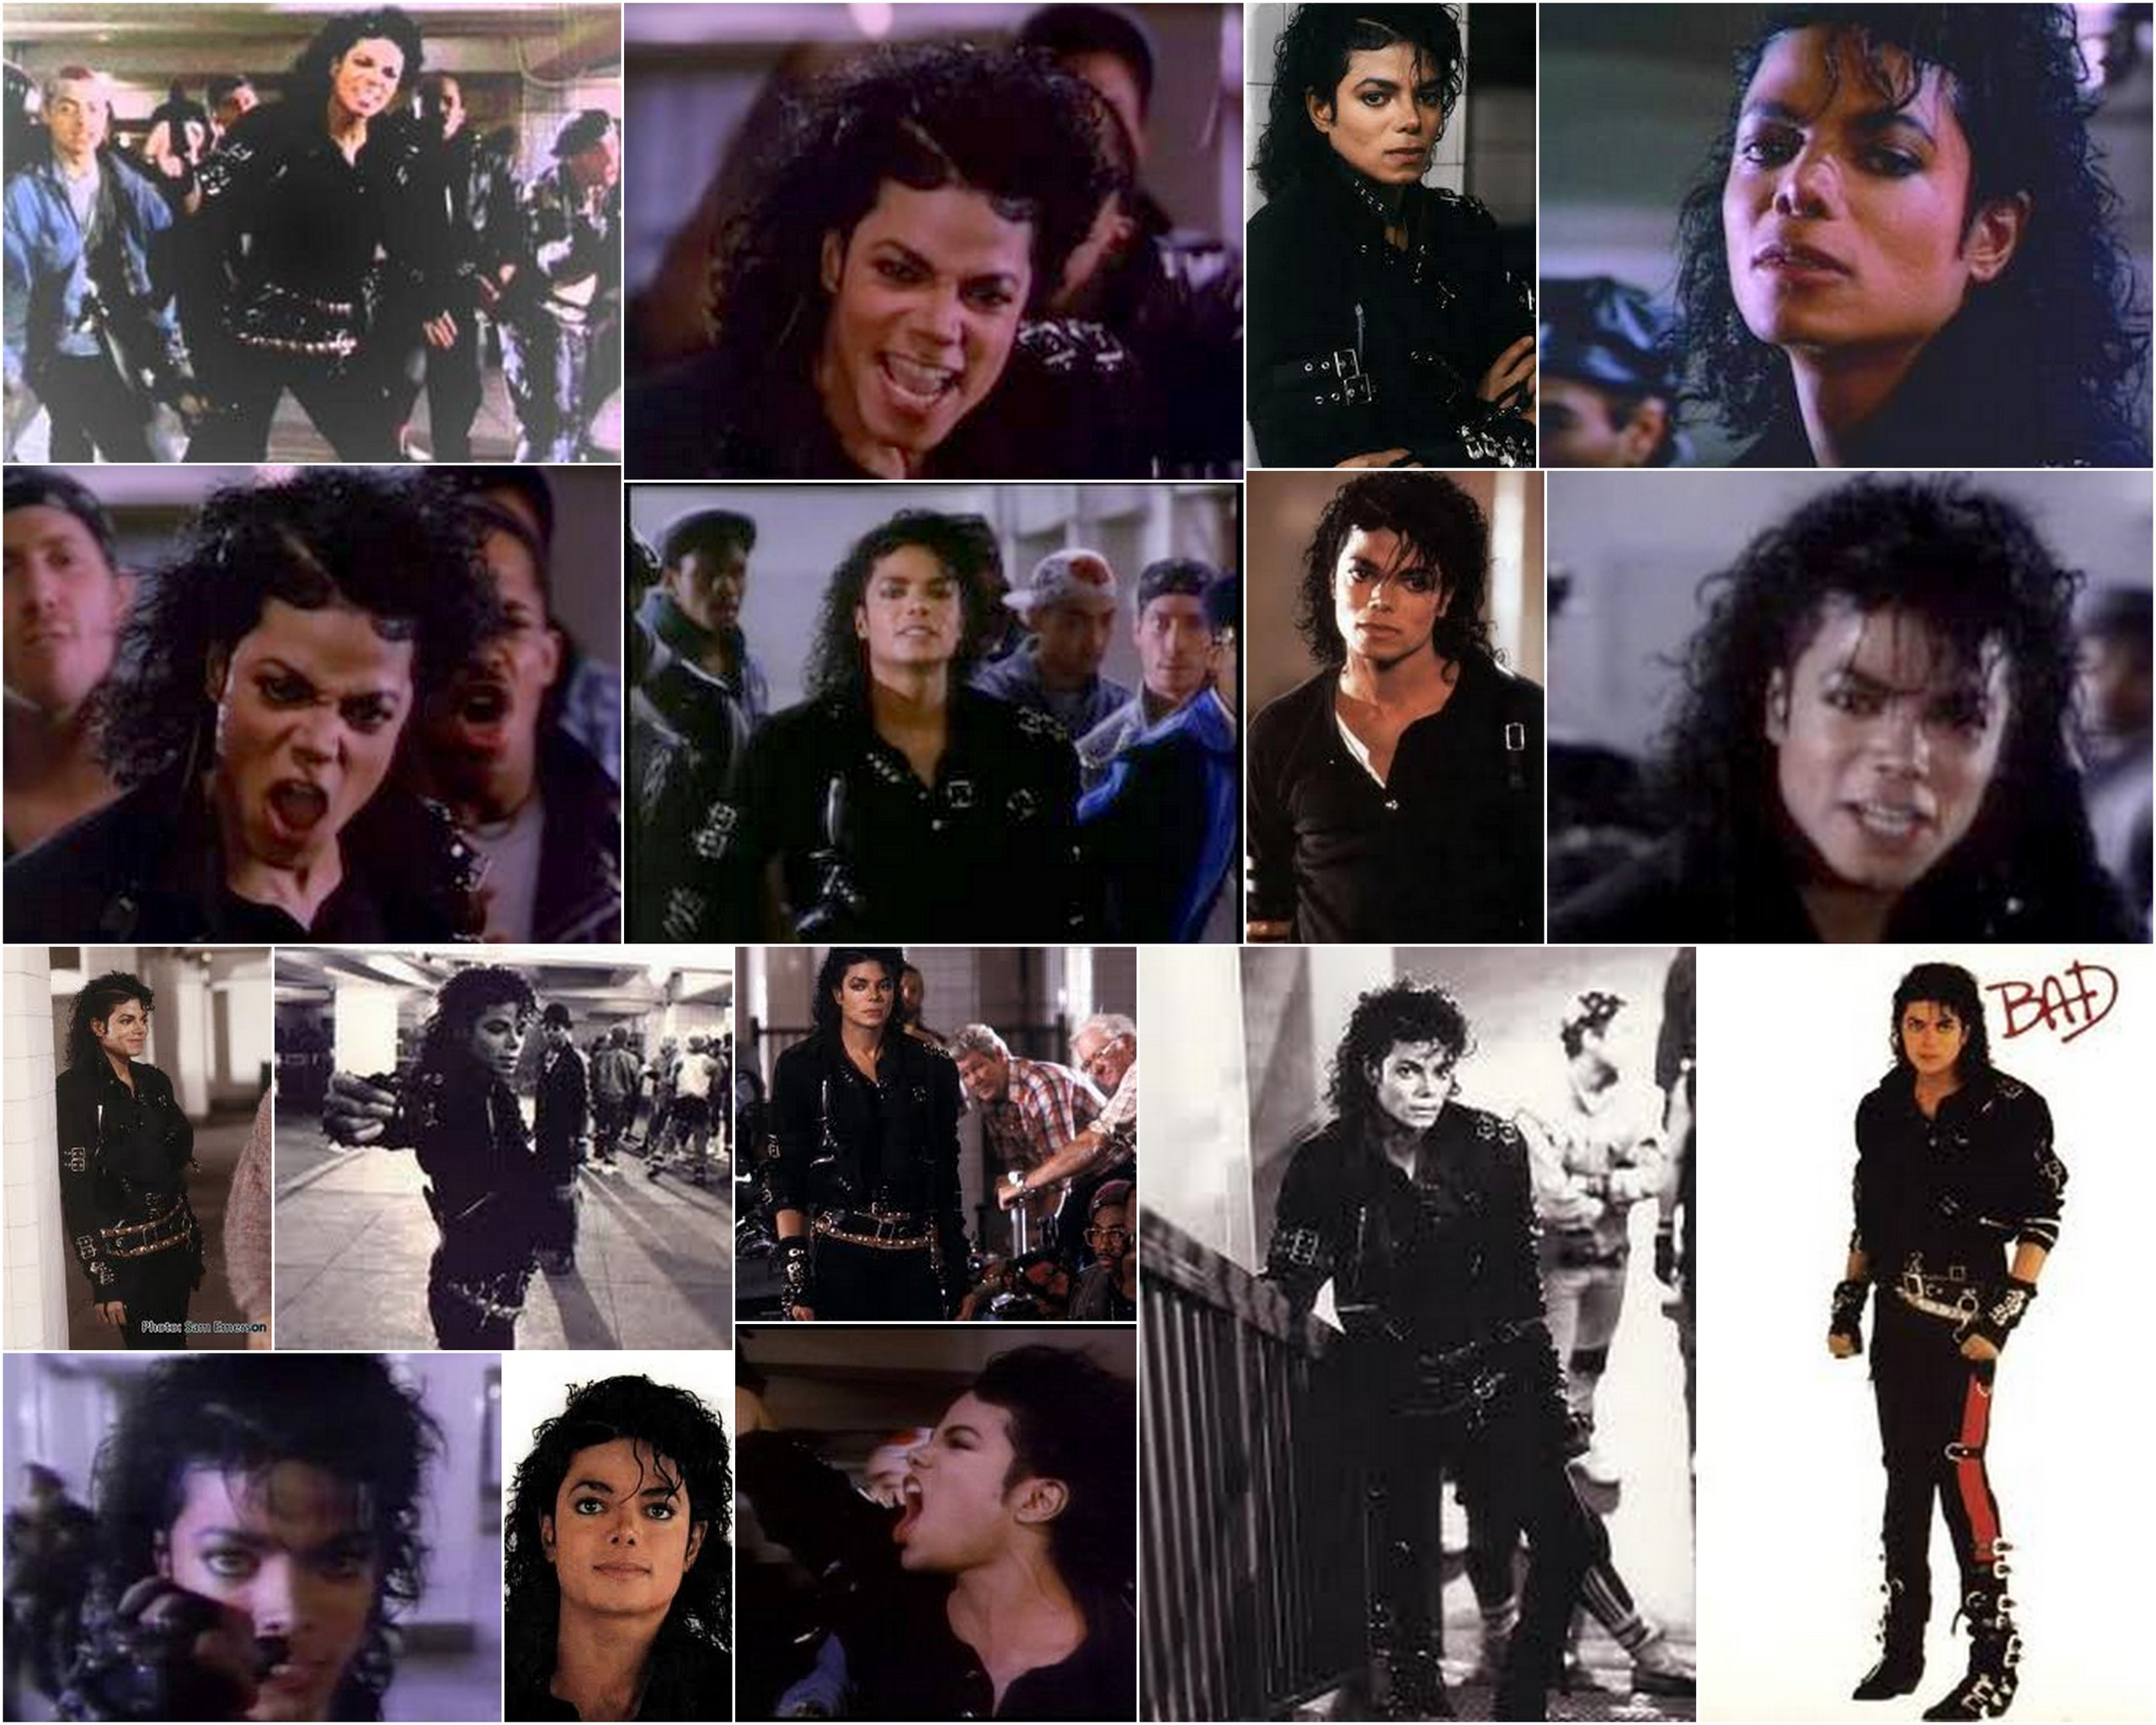 Michael Jackson Images Bad Hd Wallpaper And Background Photos